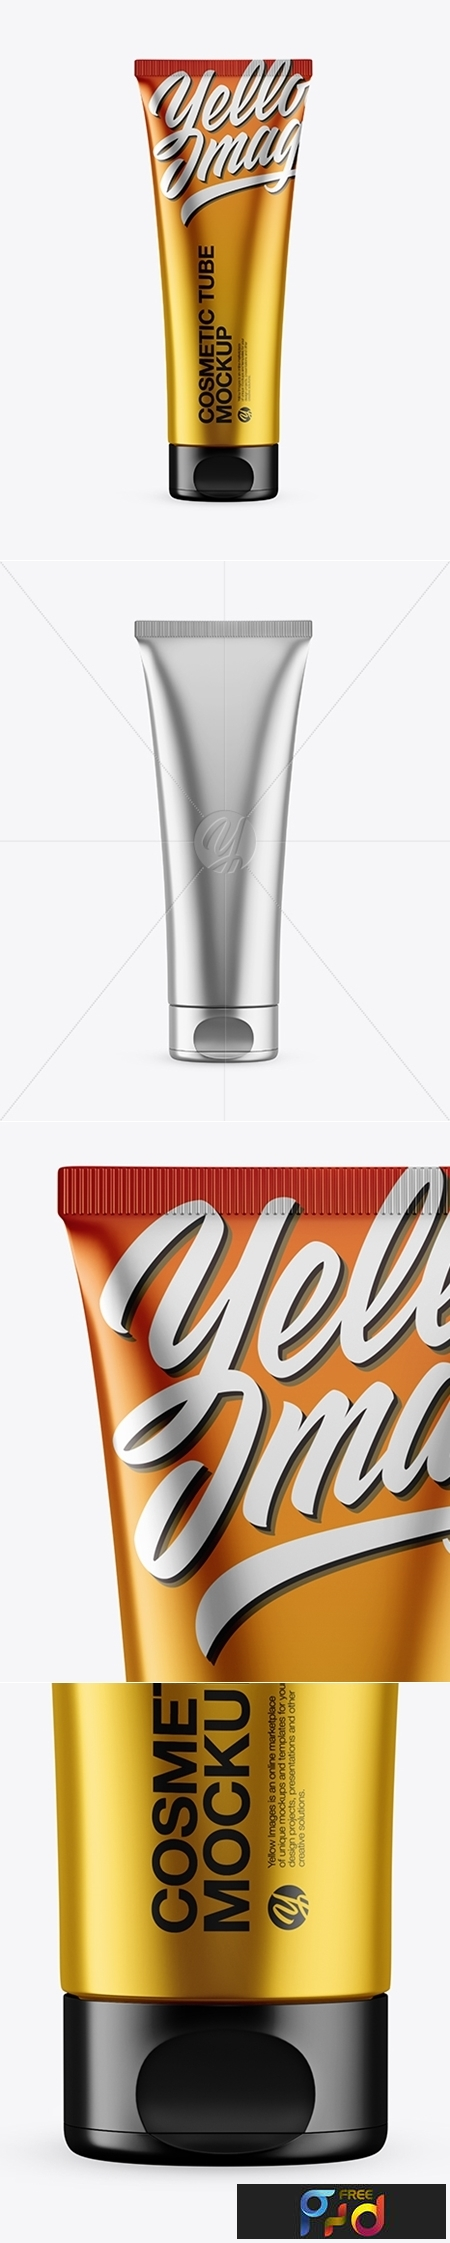 Metallic Cosmetic Tube Mockup 43385 1